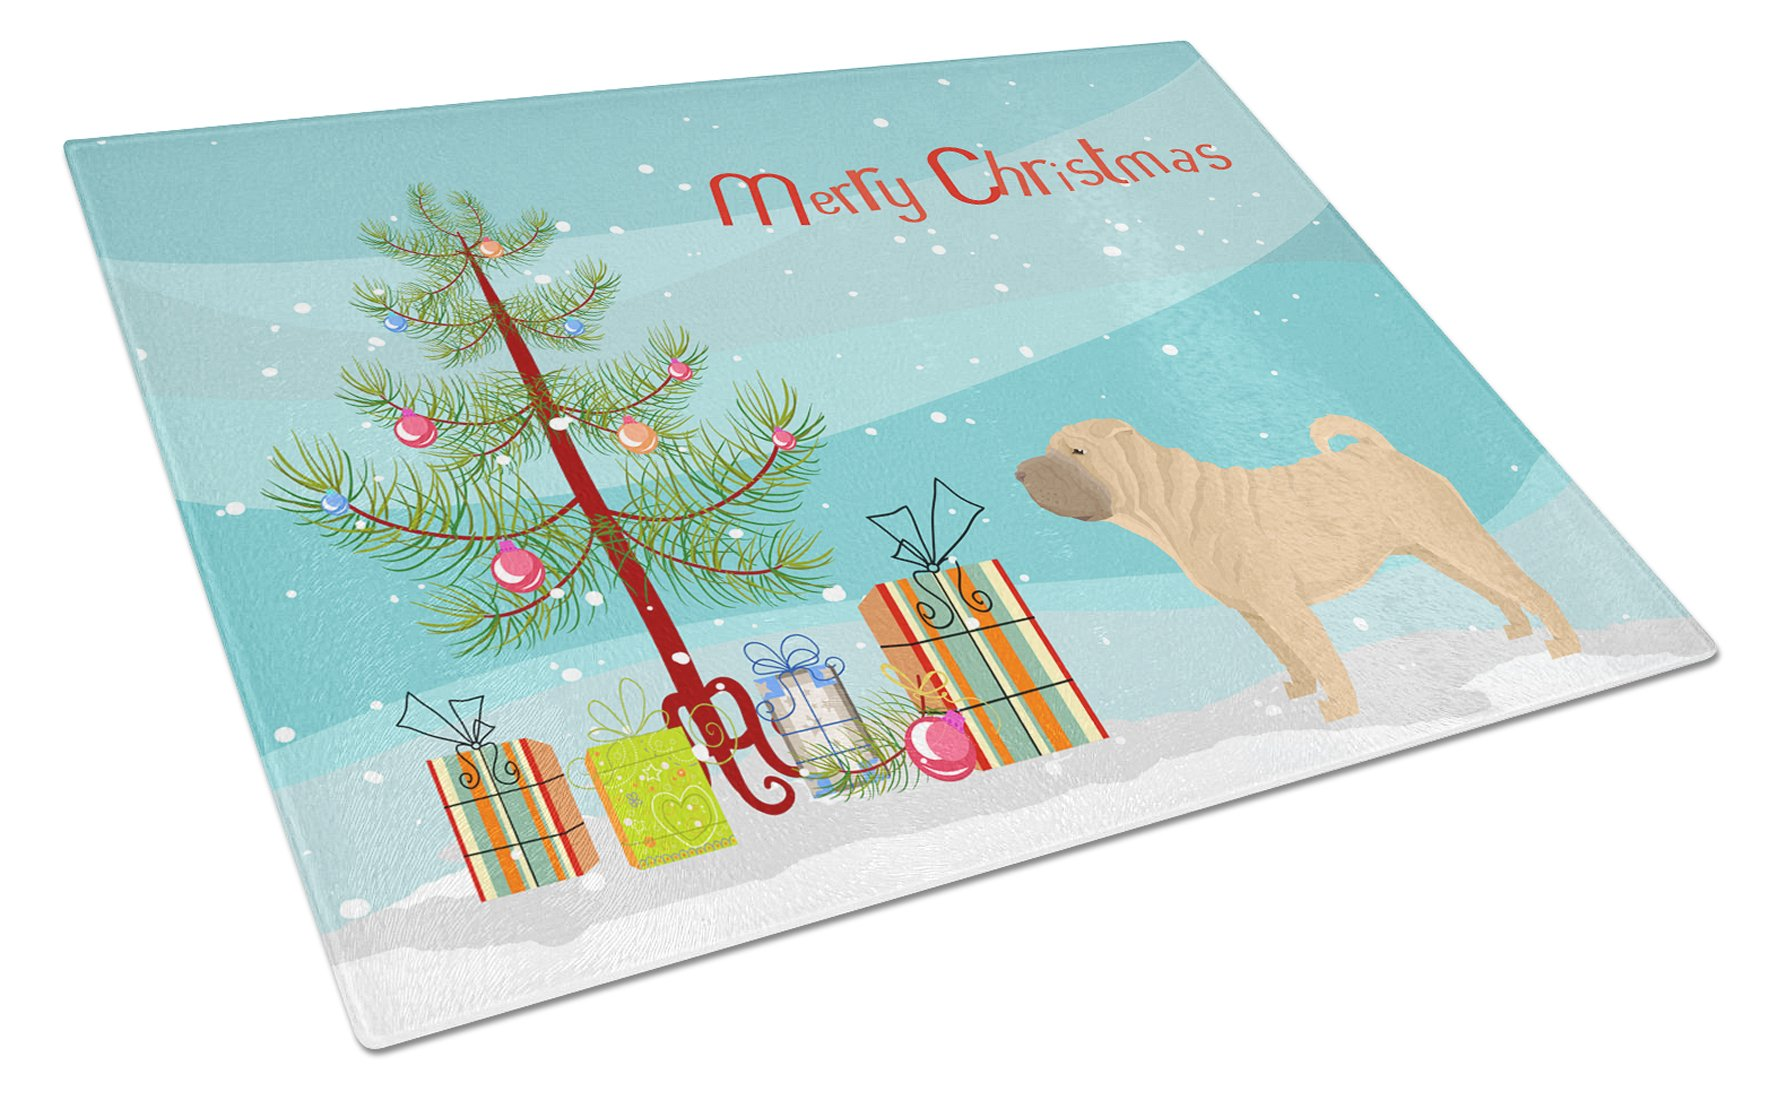 Shar Pei Christmas Tree Glass Cutting Board Large CK3562LCB by Caroline's Treasures